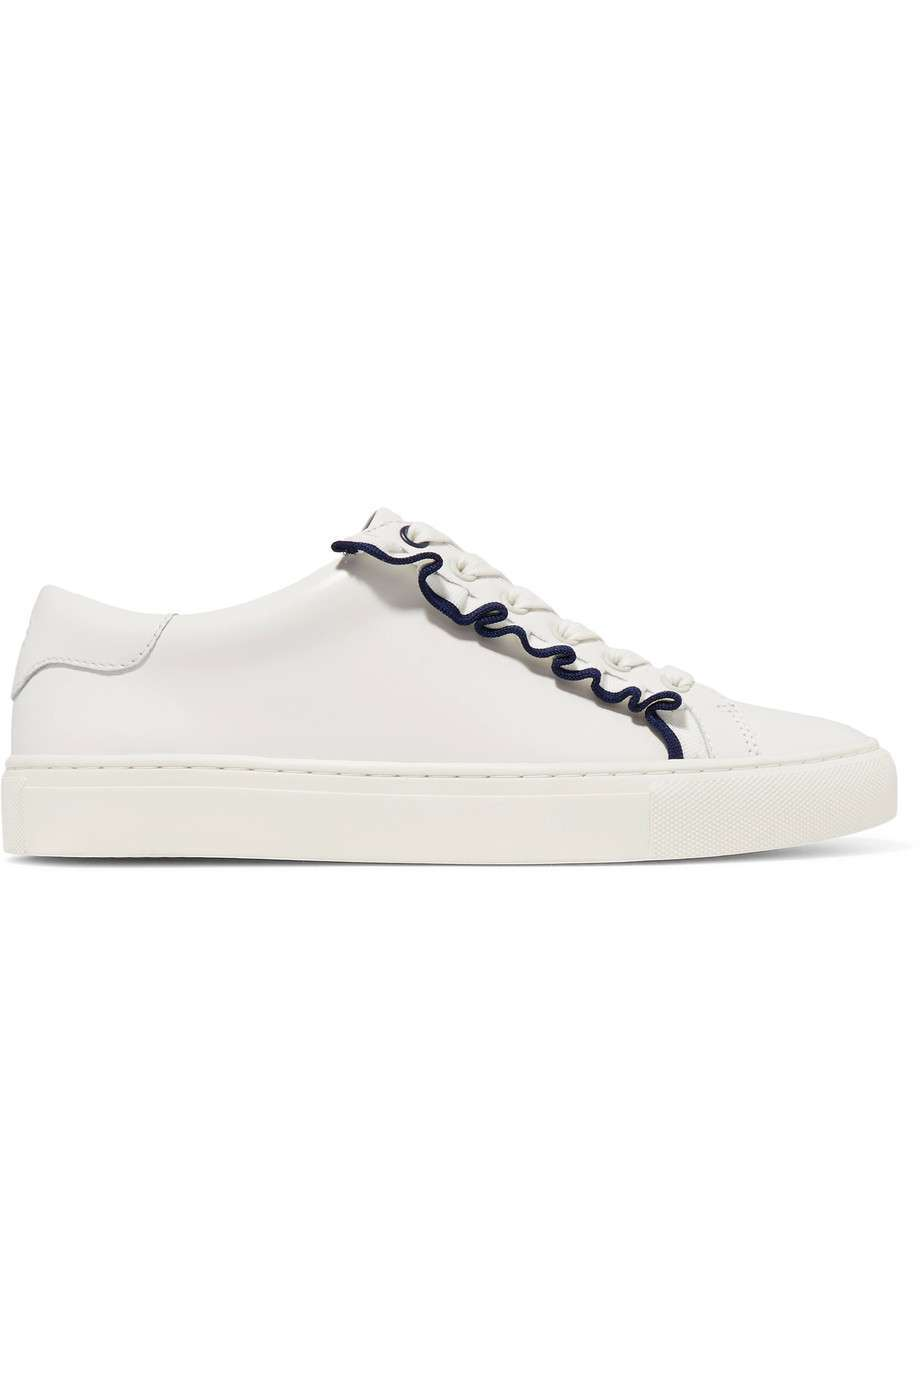 Sneakers con ruches Tory Burch